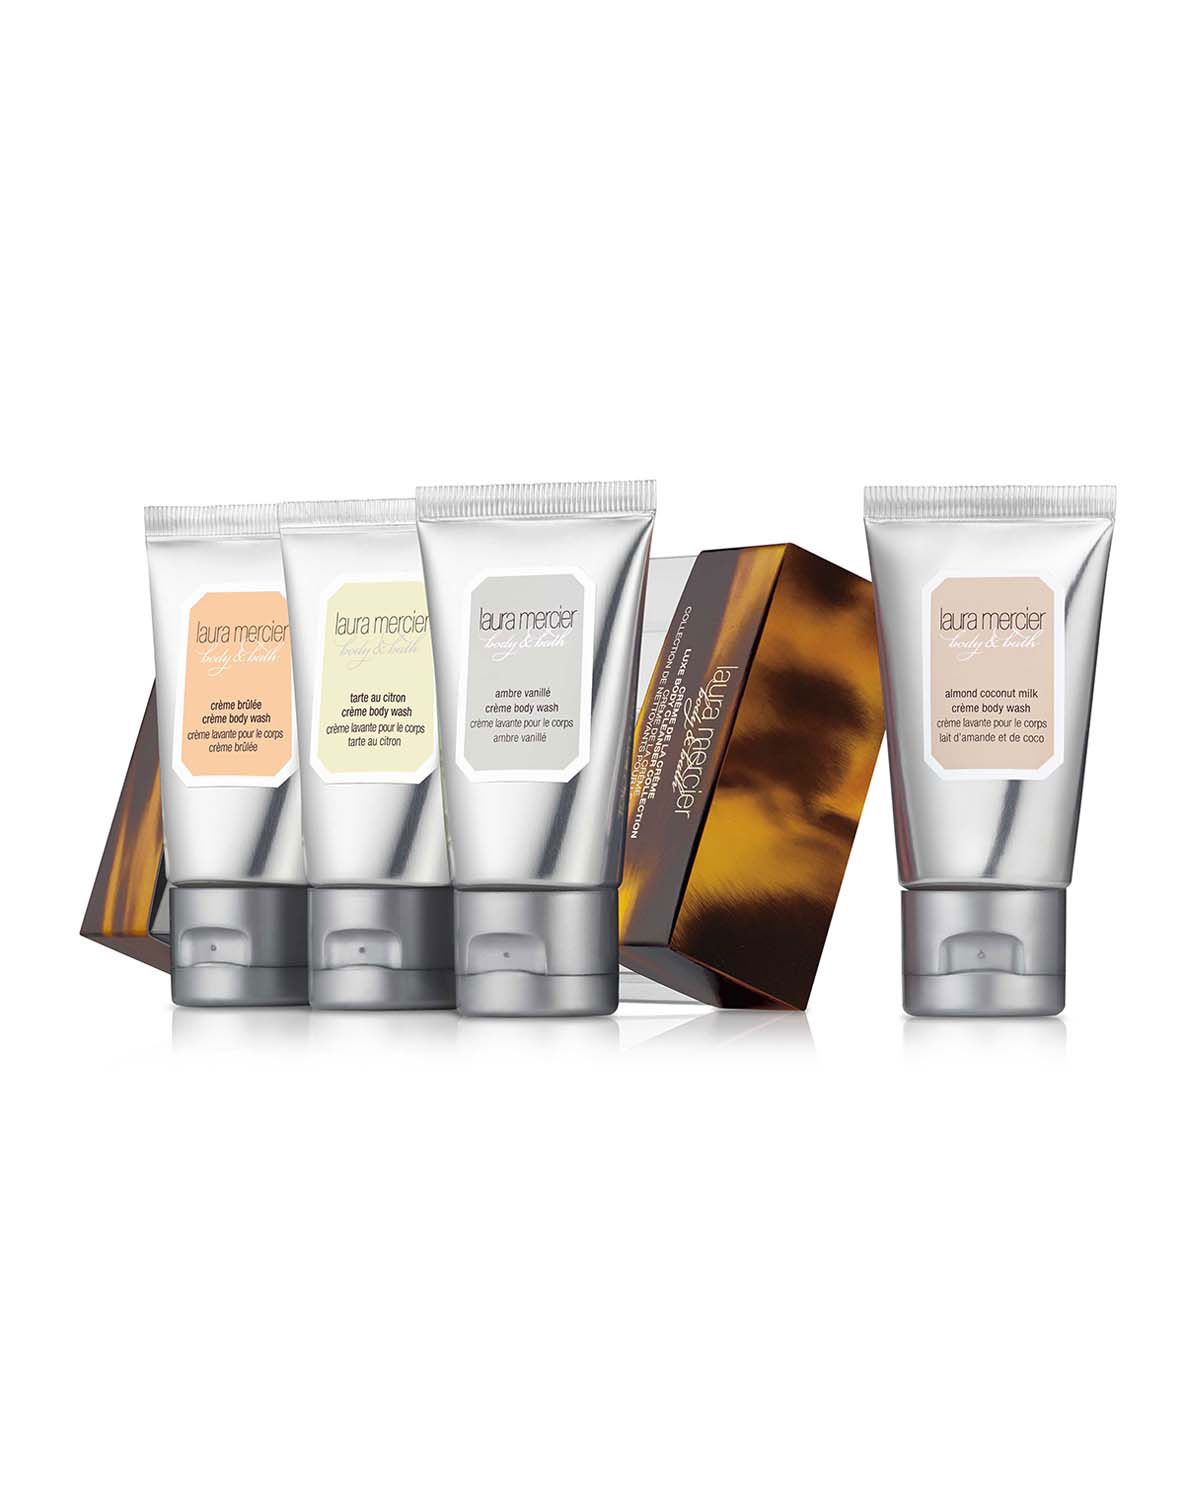 Limited Edition Crème de la Crème Luxe Body Cleanser Collection, 30 mL - Laura Mercier